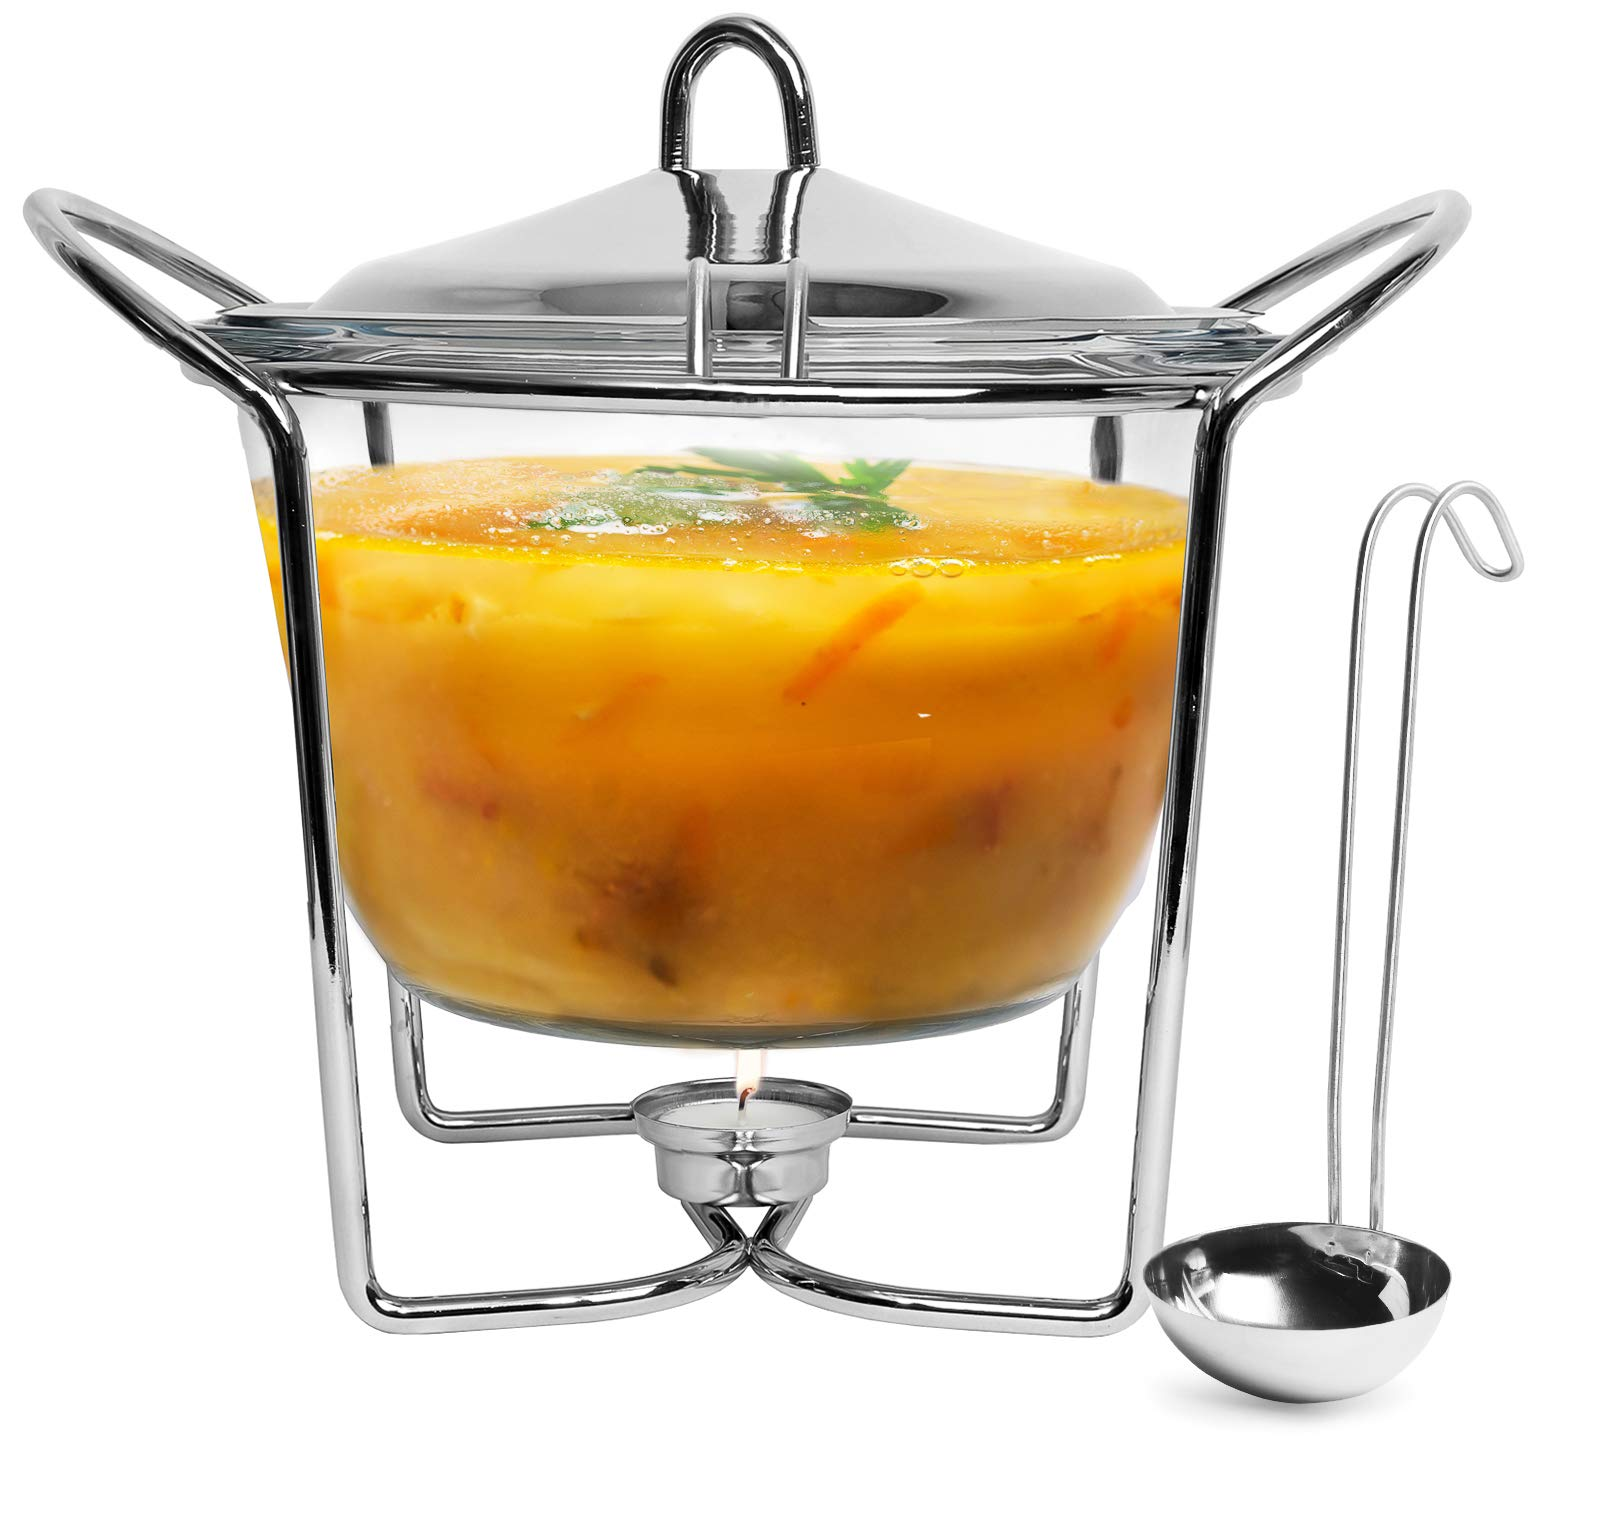 Galashield Stainless Steel with Glass Dish Buffet Server Food Warmer Chafing with Ladle (4-Quart Capacity)